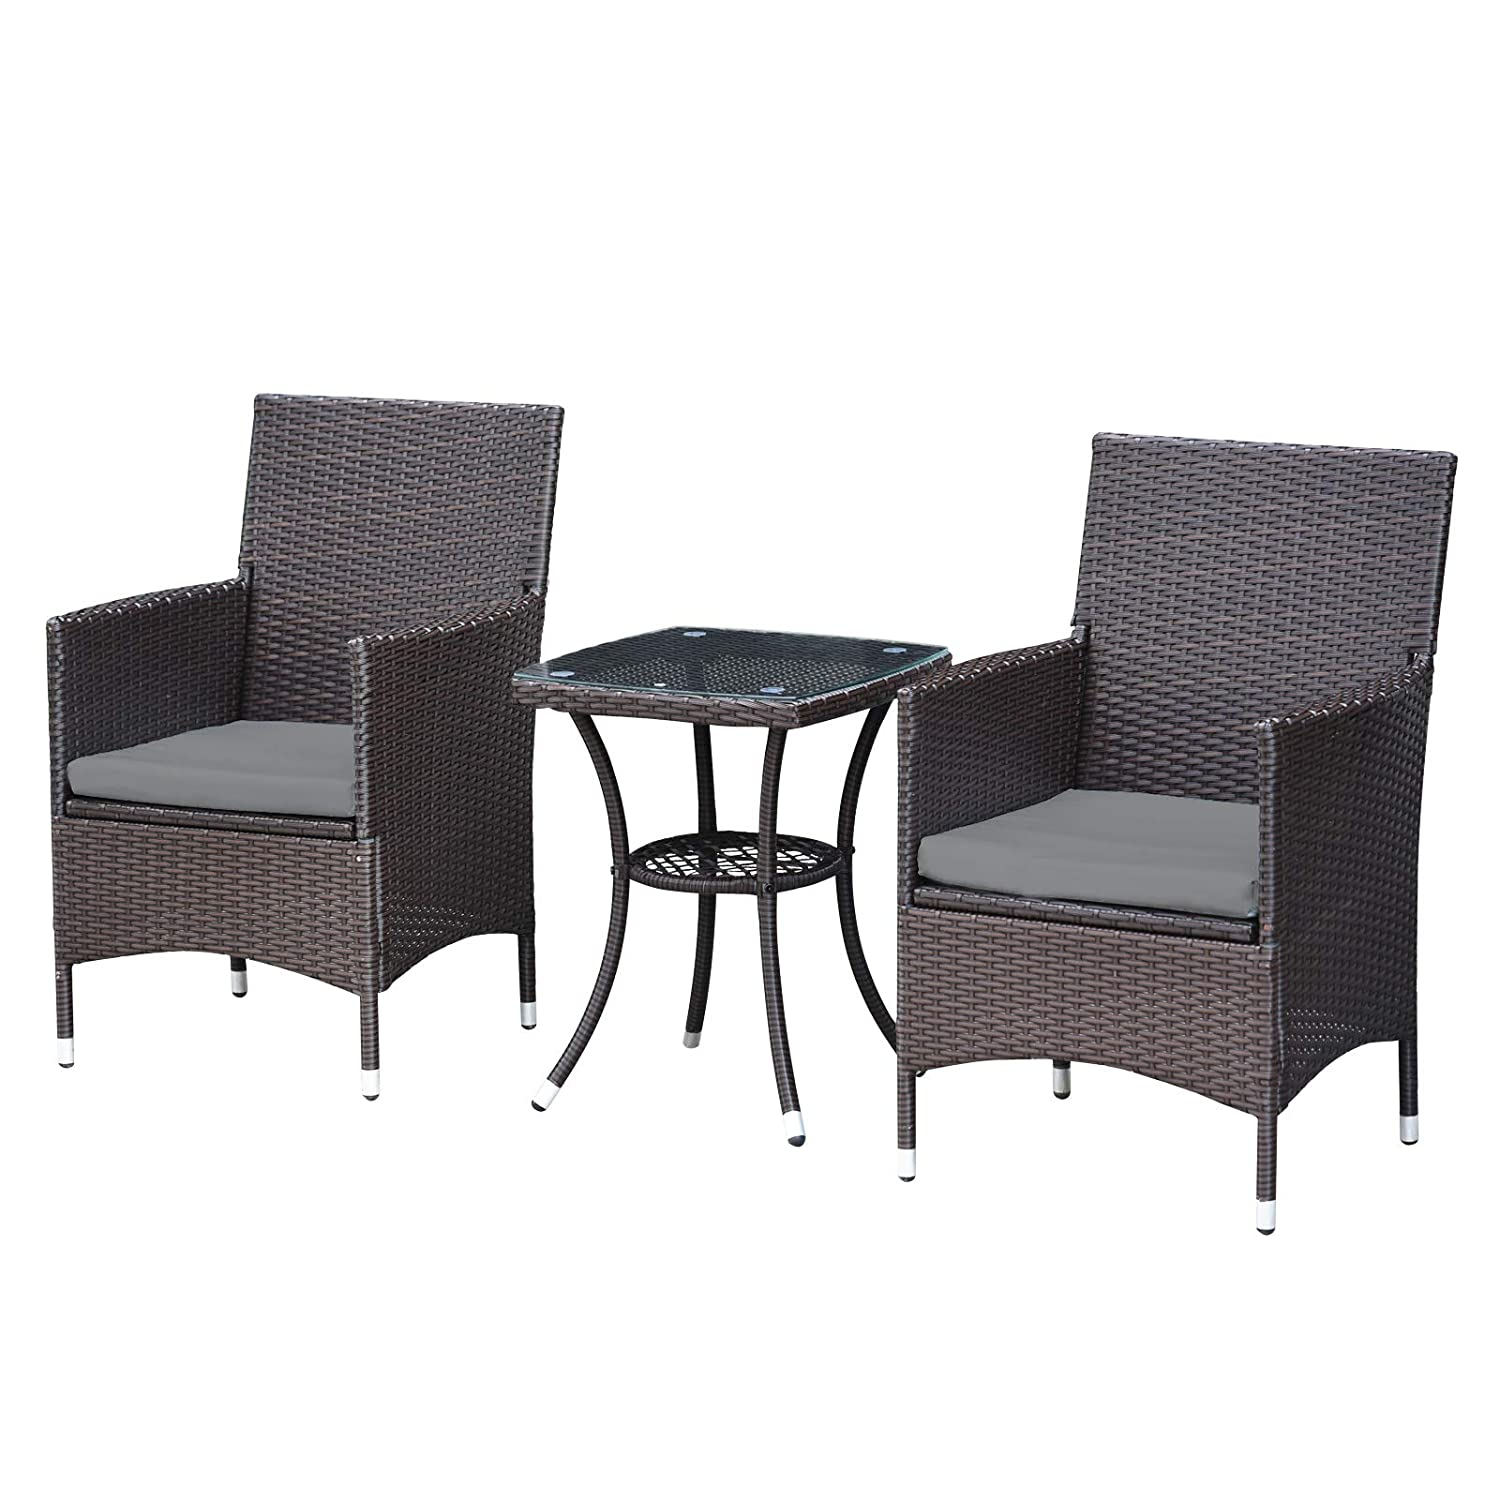 MCombo 3 Pieces Wicker Patio Set Outdoor Furniture Rattan Bistro Set Dining Chairs Porch Backyard Deck Brown Lawn Conversation Chair with Gray Cushion and Glass top Table 6081-DC03-BR